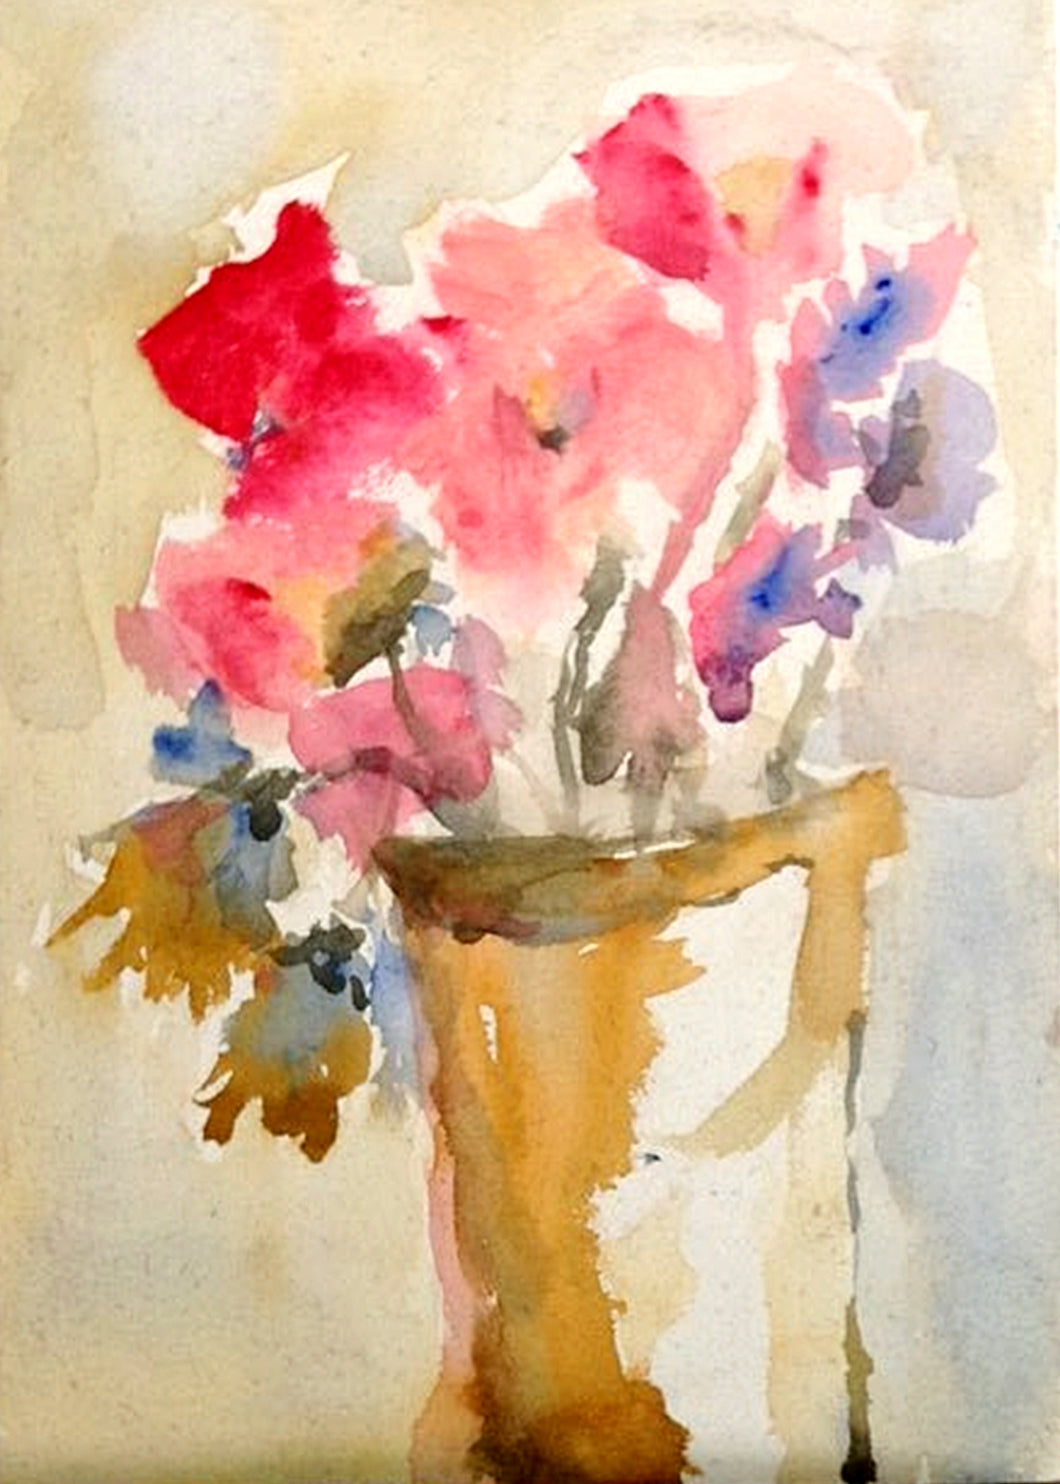 Floral still life in gouache on textured panel.